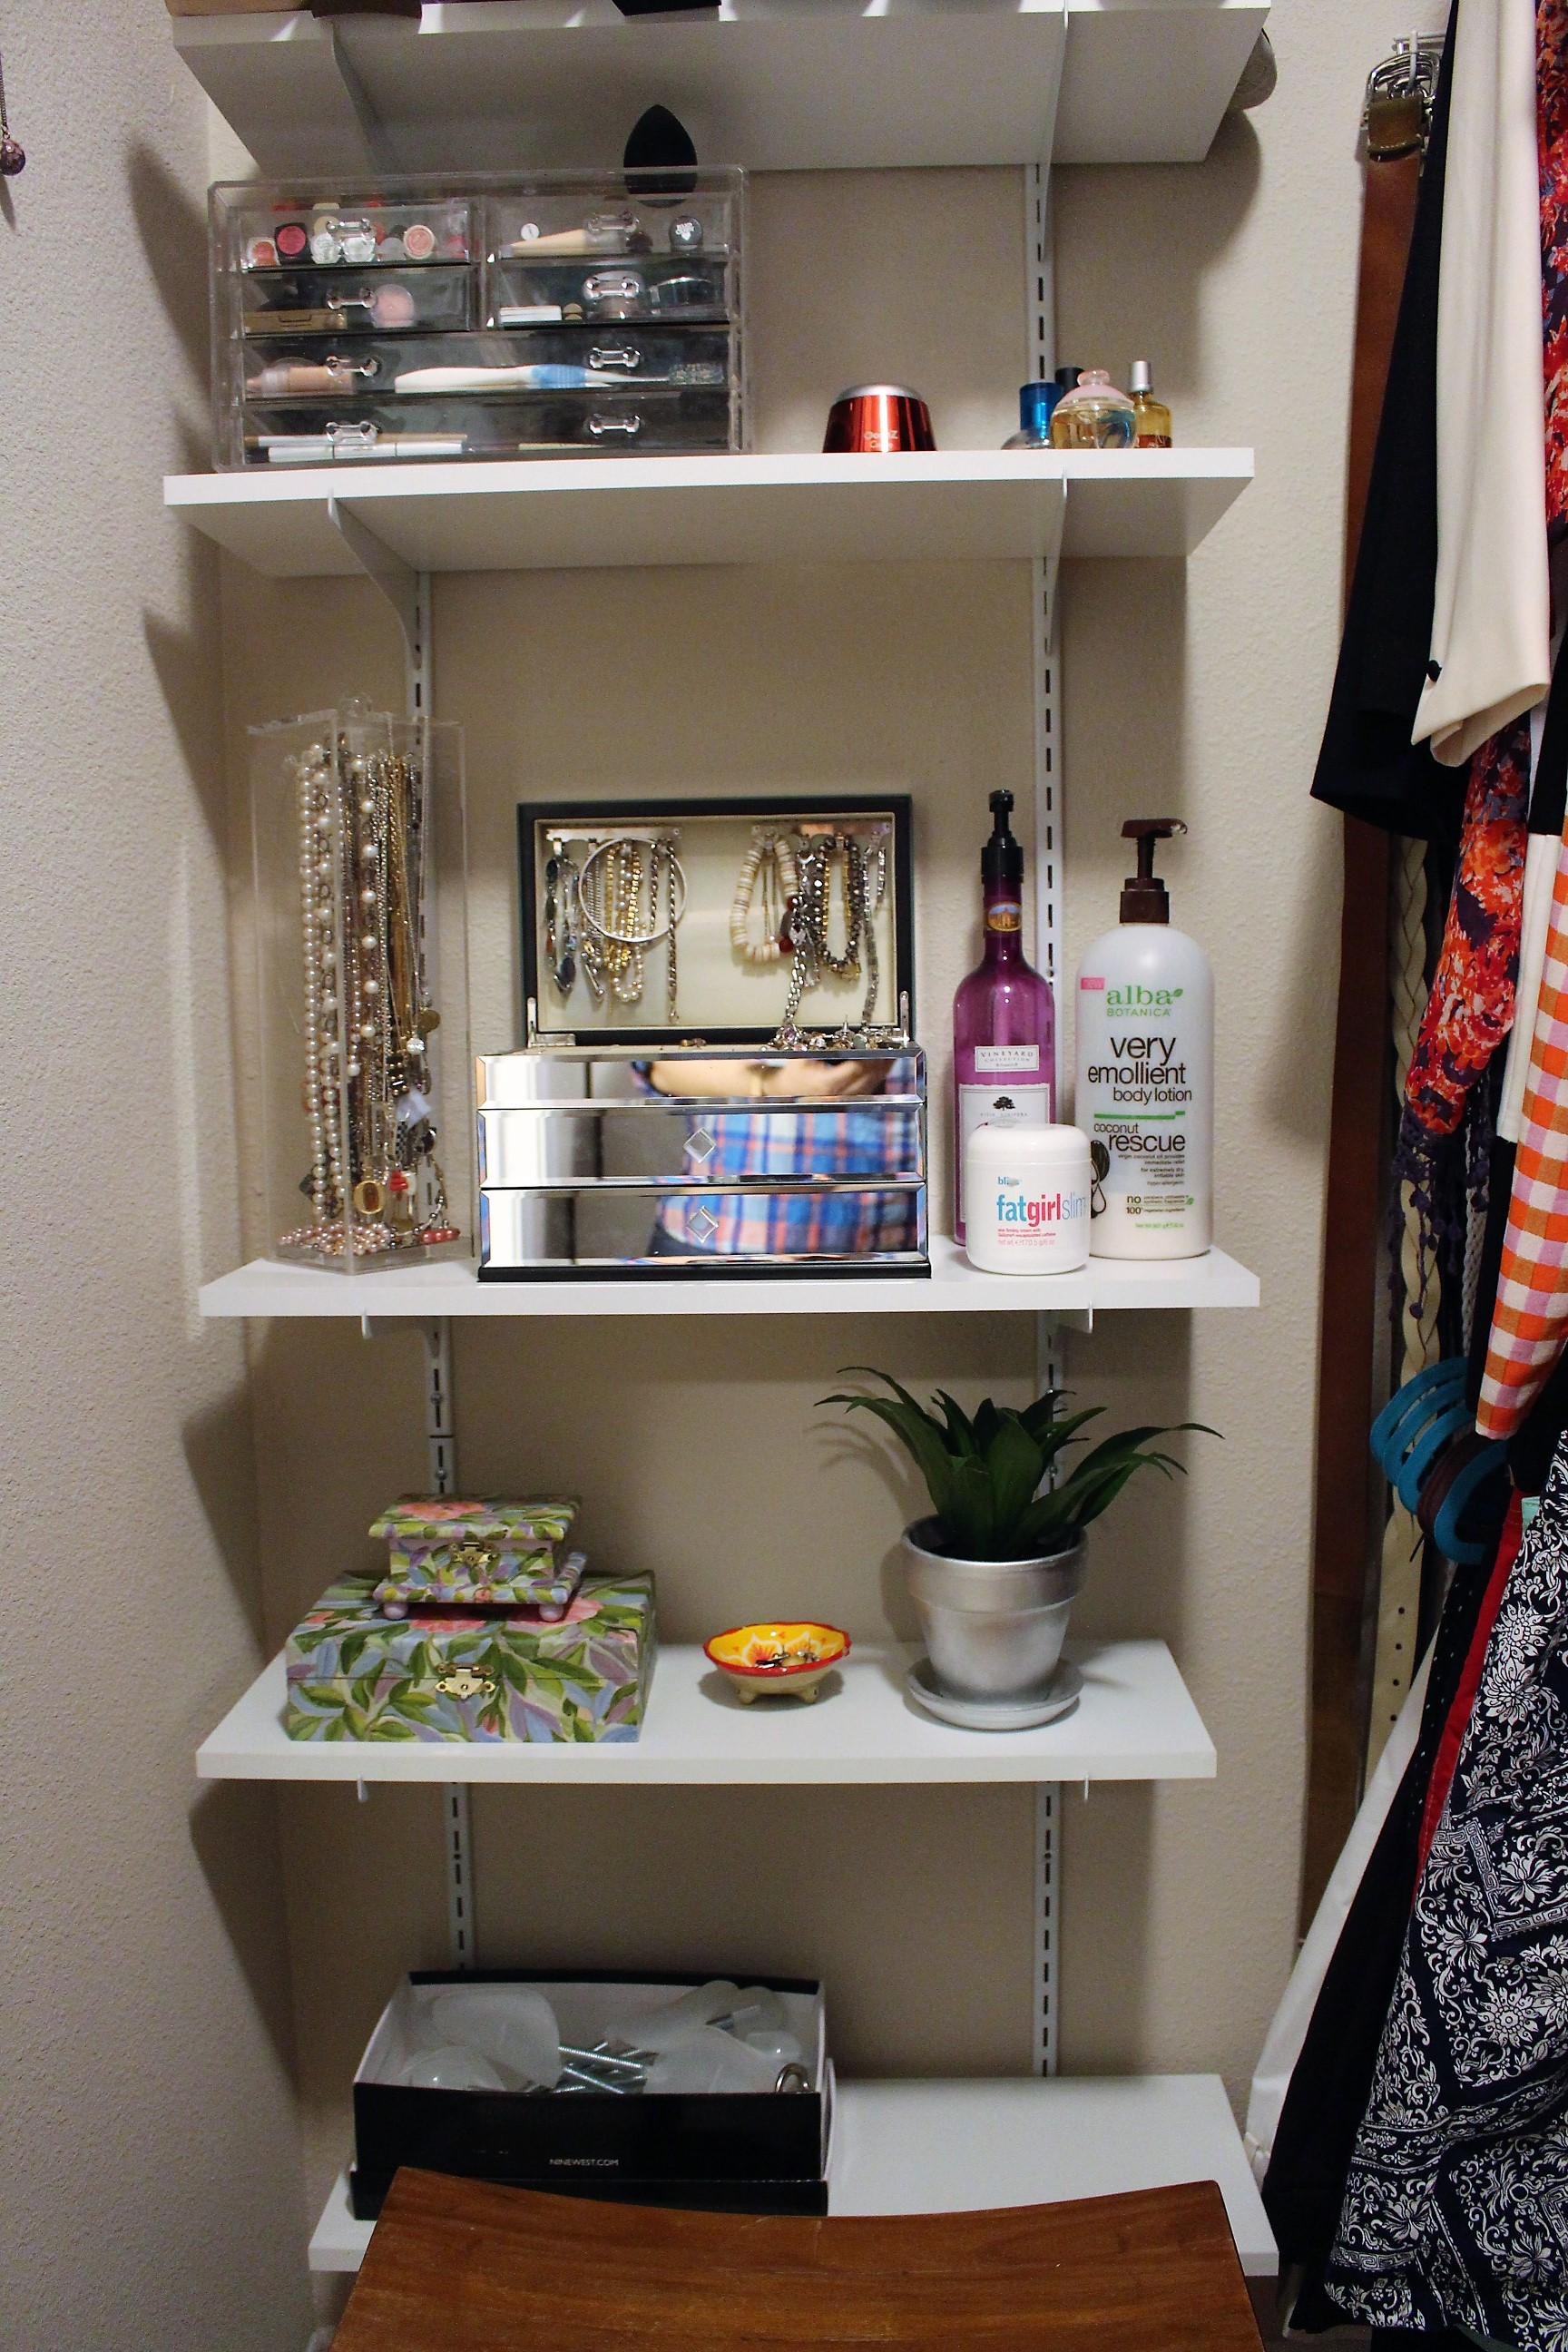 On the opposite side of the closet, I installed shelving to help me store some of my jewlery and makeup.